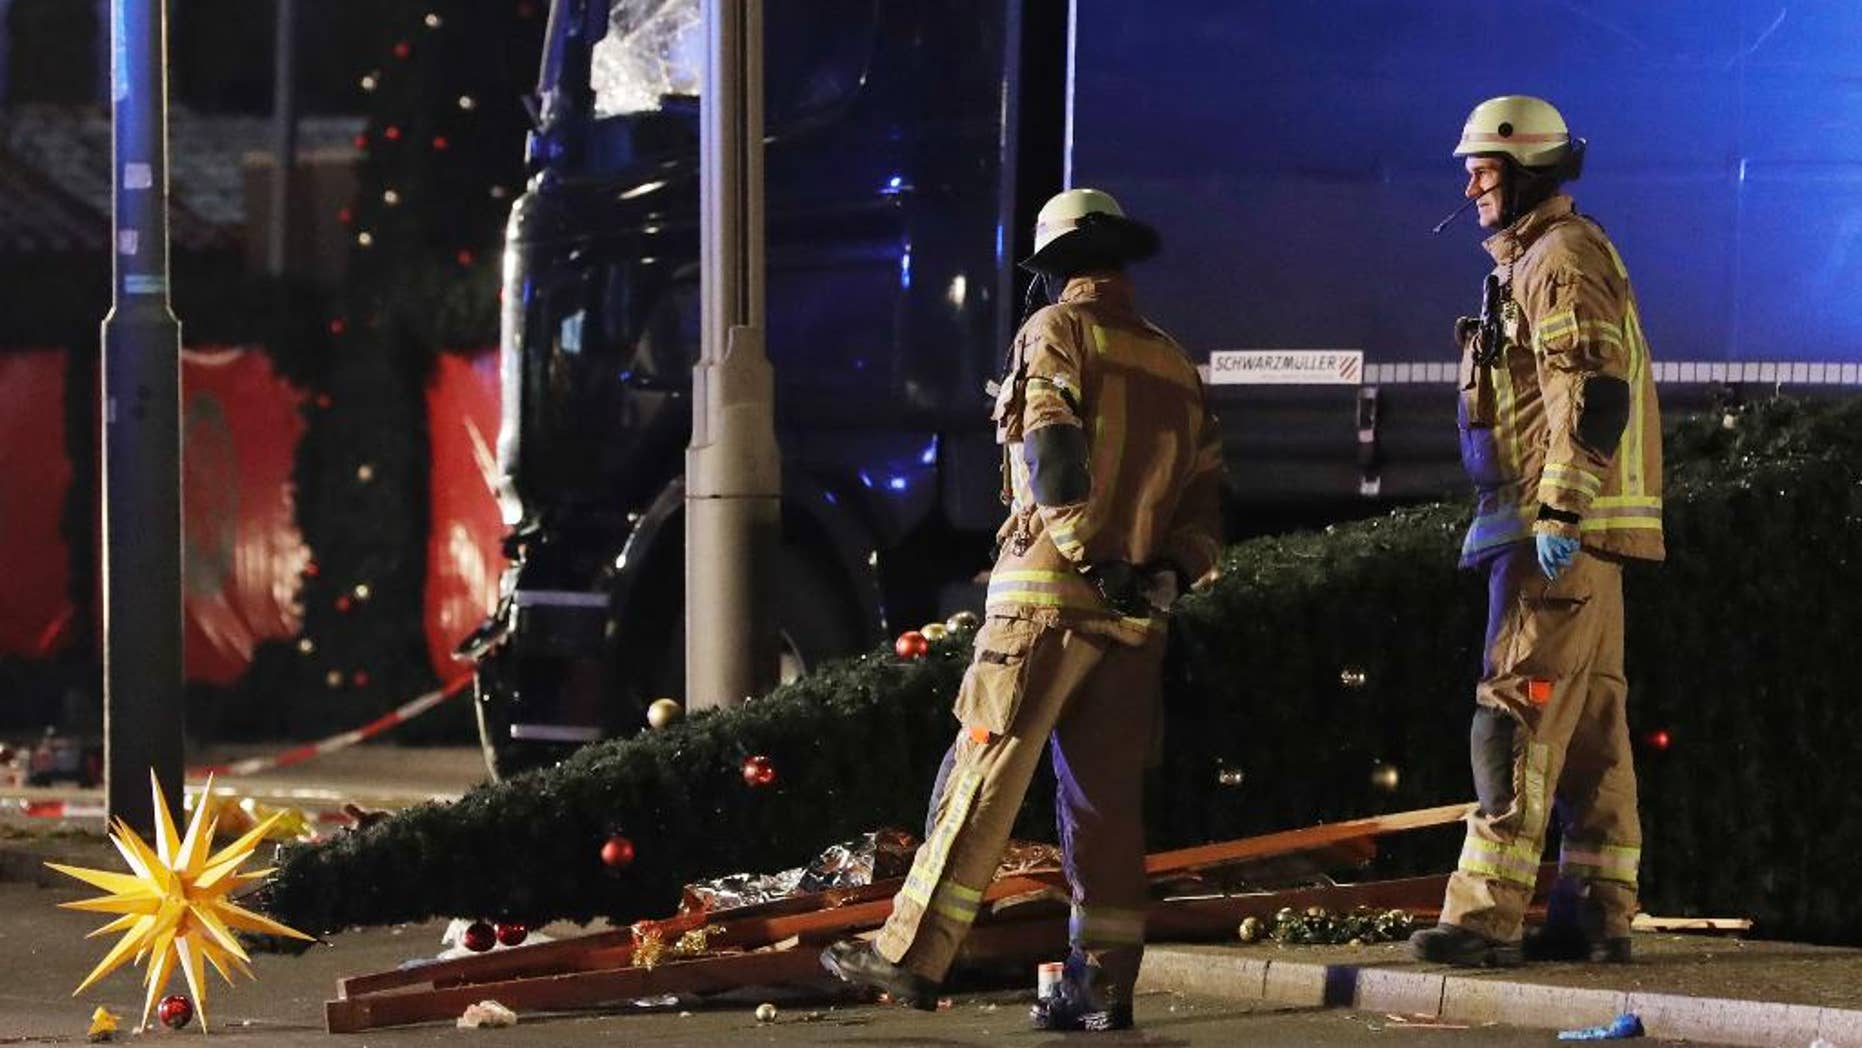 FILE - In this Monday, Dec. 19, 2016 file photo, firefighters stand next to a toppled Christmas tree after a truck ran into a crowded market and killed several people in Berlin, Germany. Though Tunisian Anis Amri had been under surveillance, he was able to hijack a truck and kill 12 people and wound dozens of others — the first mass-casualty Islamic extremist attack in Germany. (AP Photo/Michael Sohn)